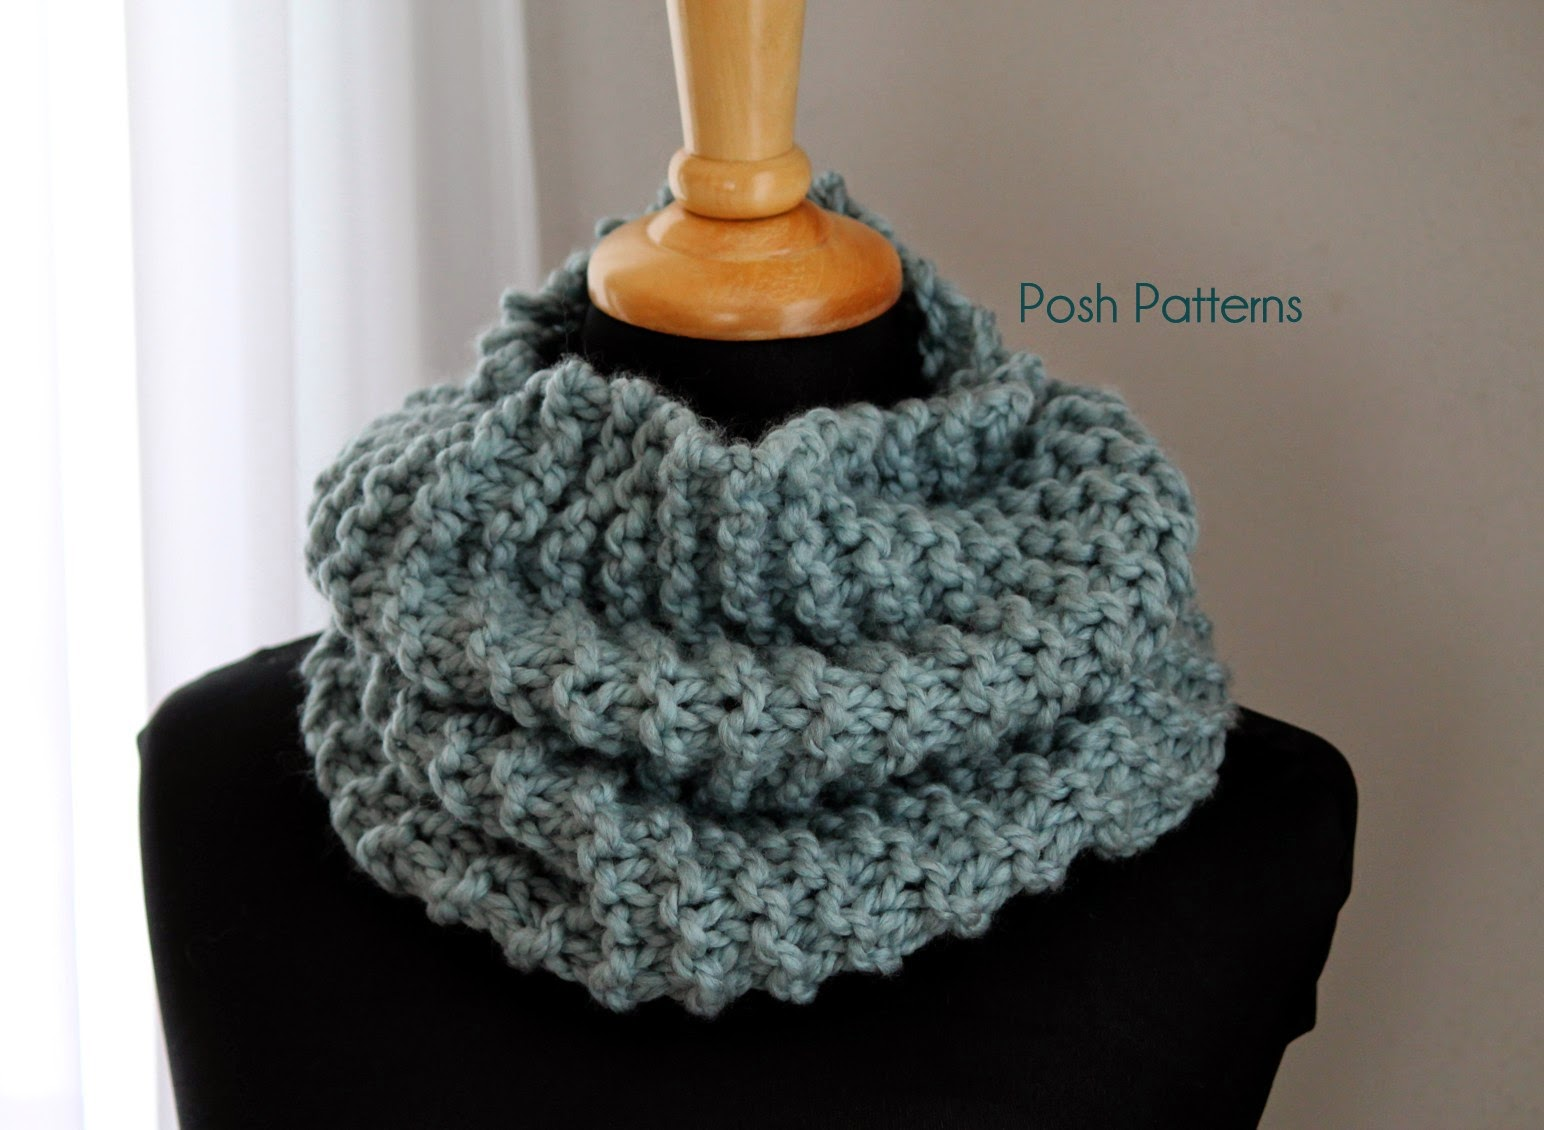 Slouchy Beret Knitting Pattern Free : Posh Patterns Easy Crochet Patterns and Knitting Patterns: Free Knitting Patt...